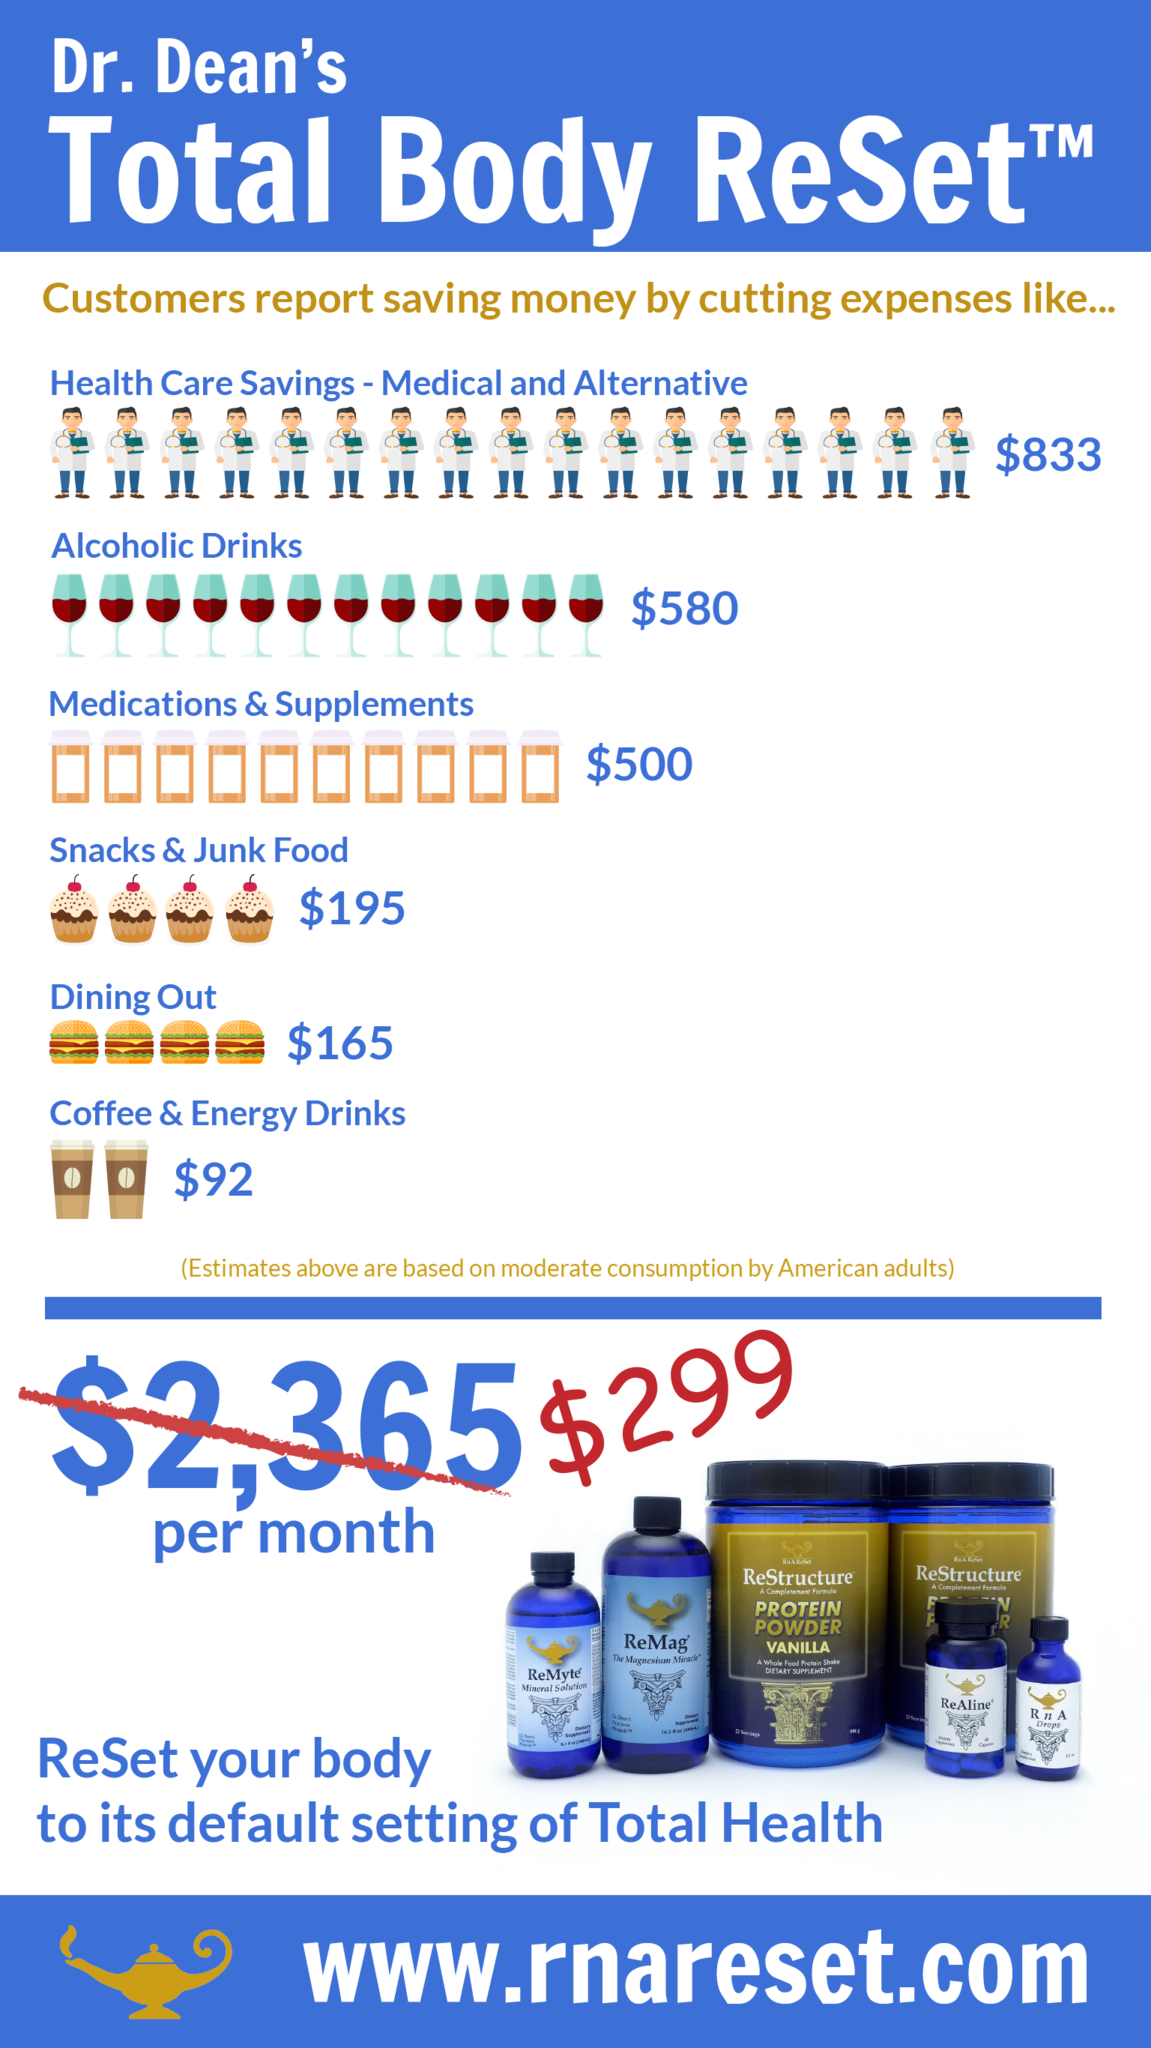 Total Body ReSet savings